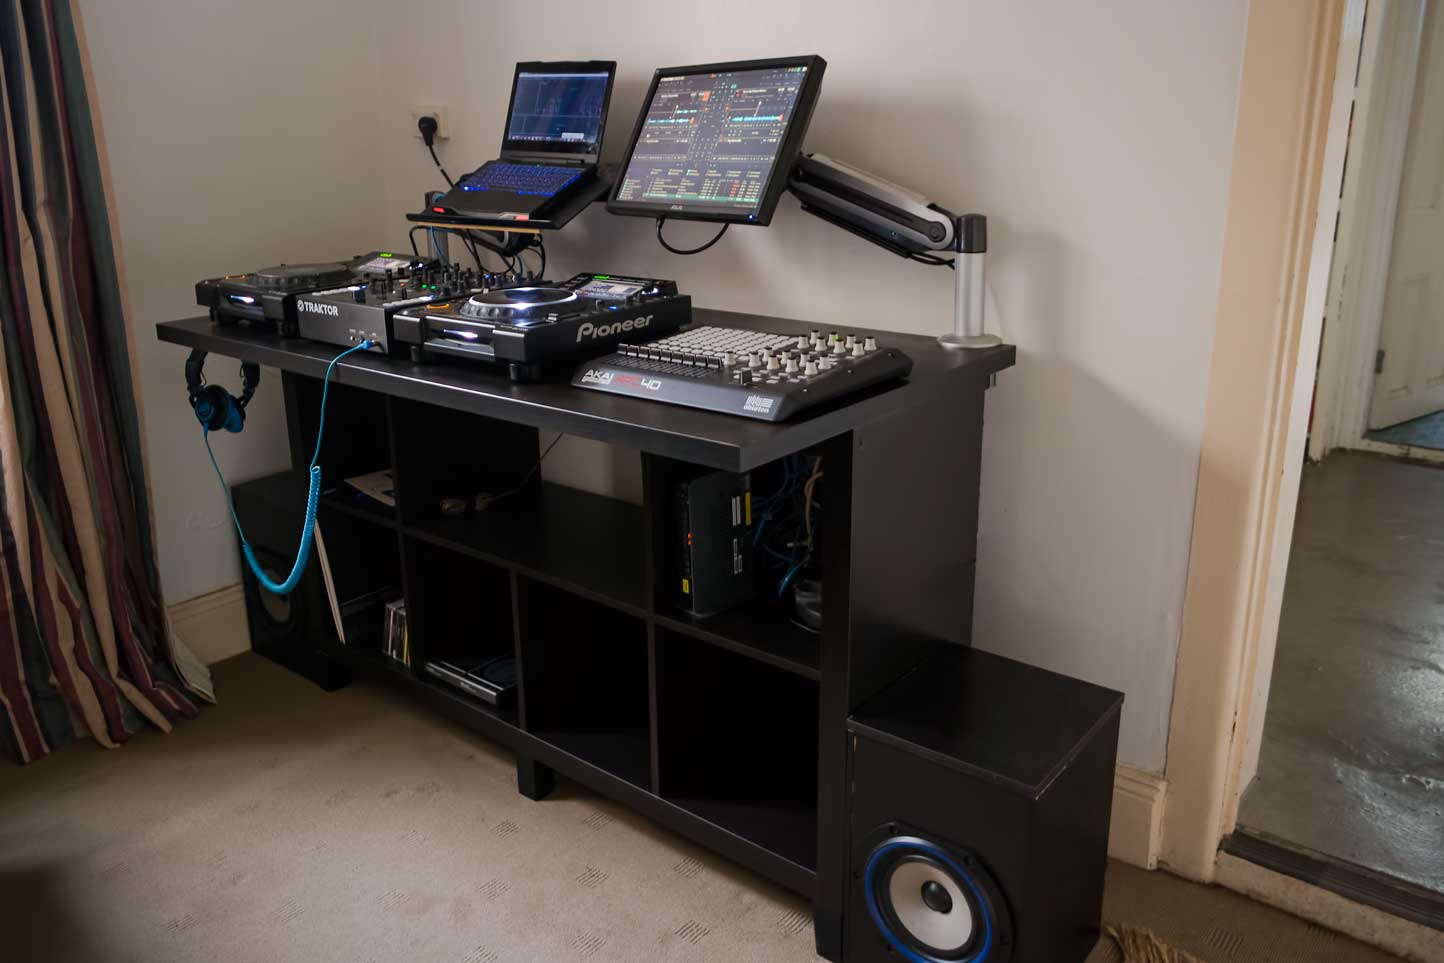 dj stand selber bauen dj pult eigenbau youtube ikea and. Black Bedroom Furniture Sets. Home Design Ideas